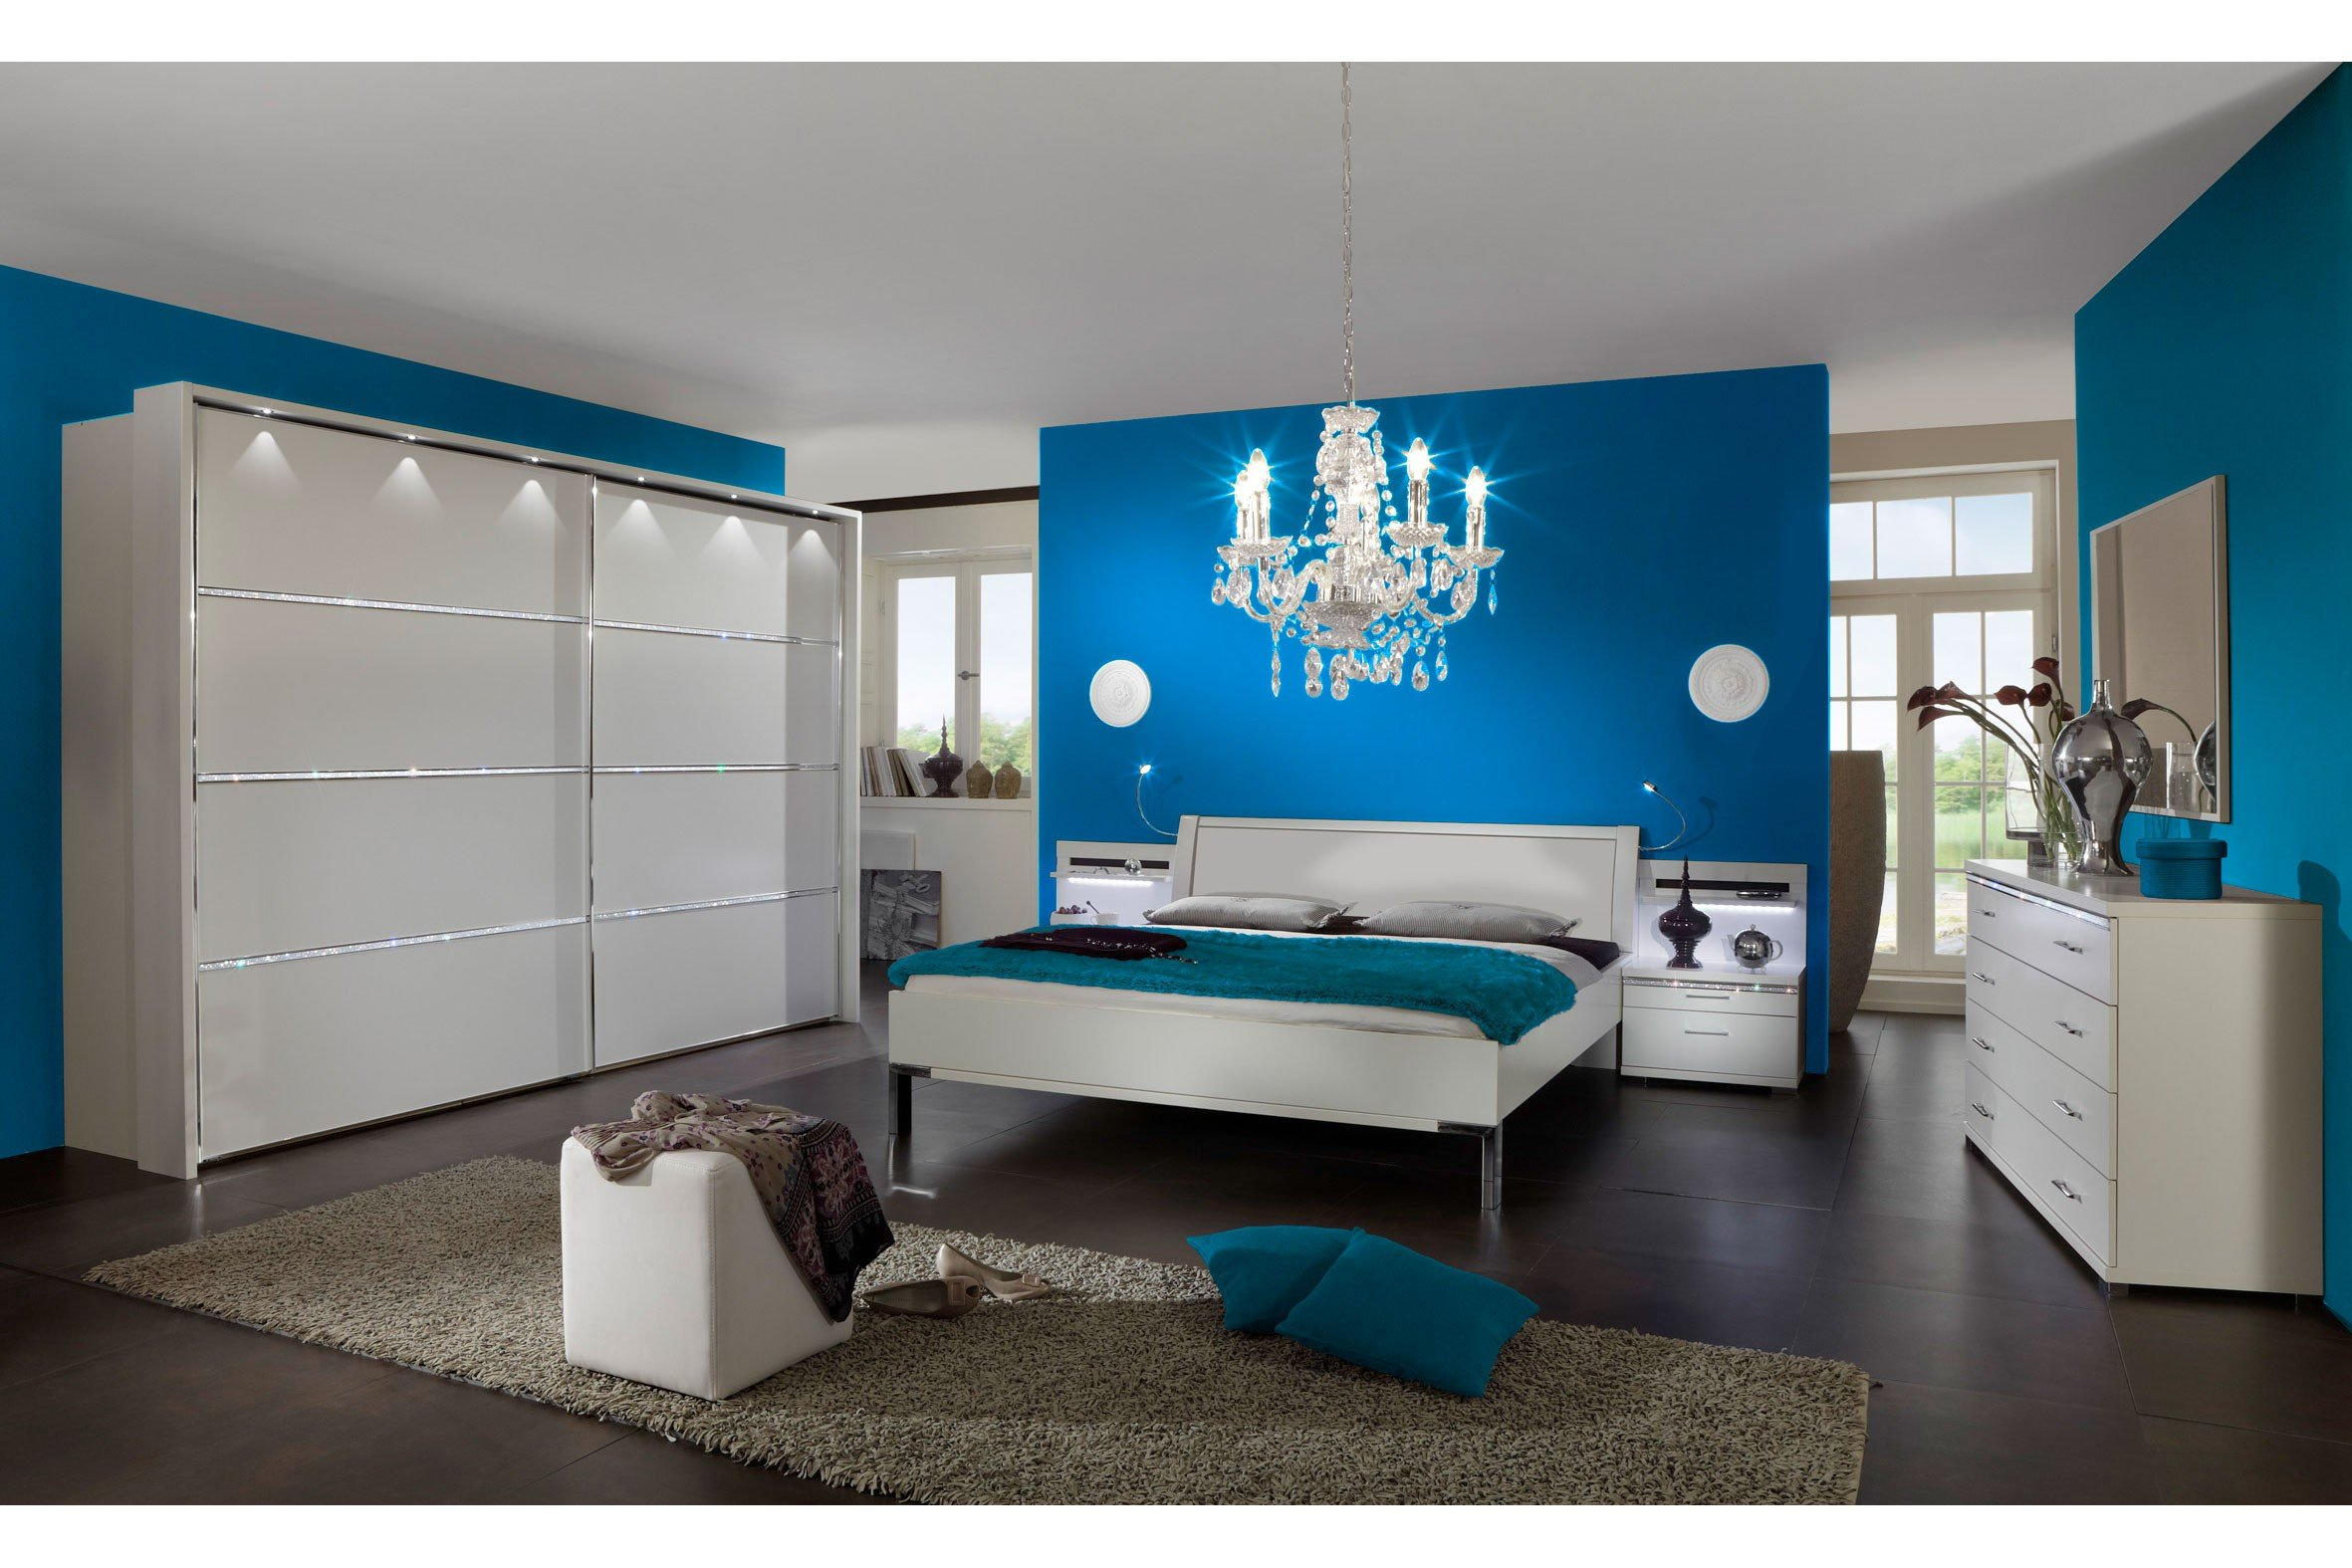 angebot ohne deko beleuchtung lattenrost matratze beim bel. Black Bedroom Furniture Sets. Home Design Ideas